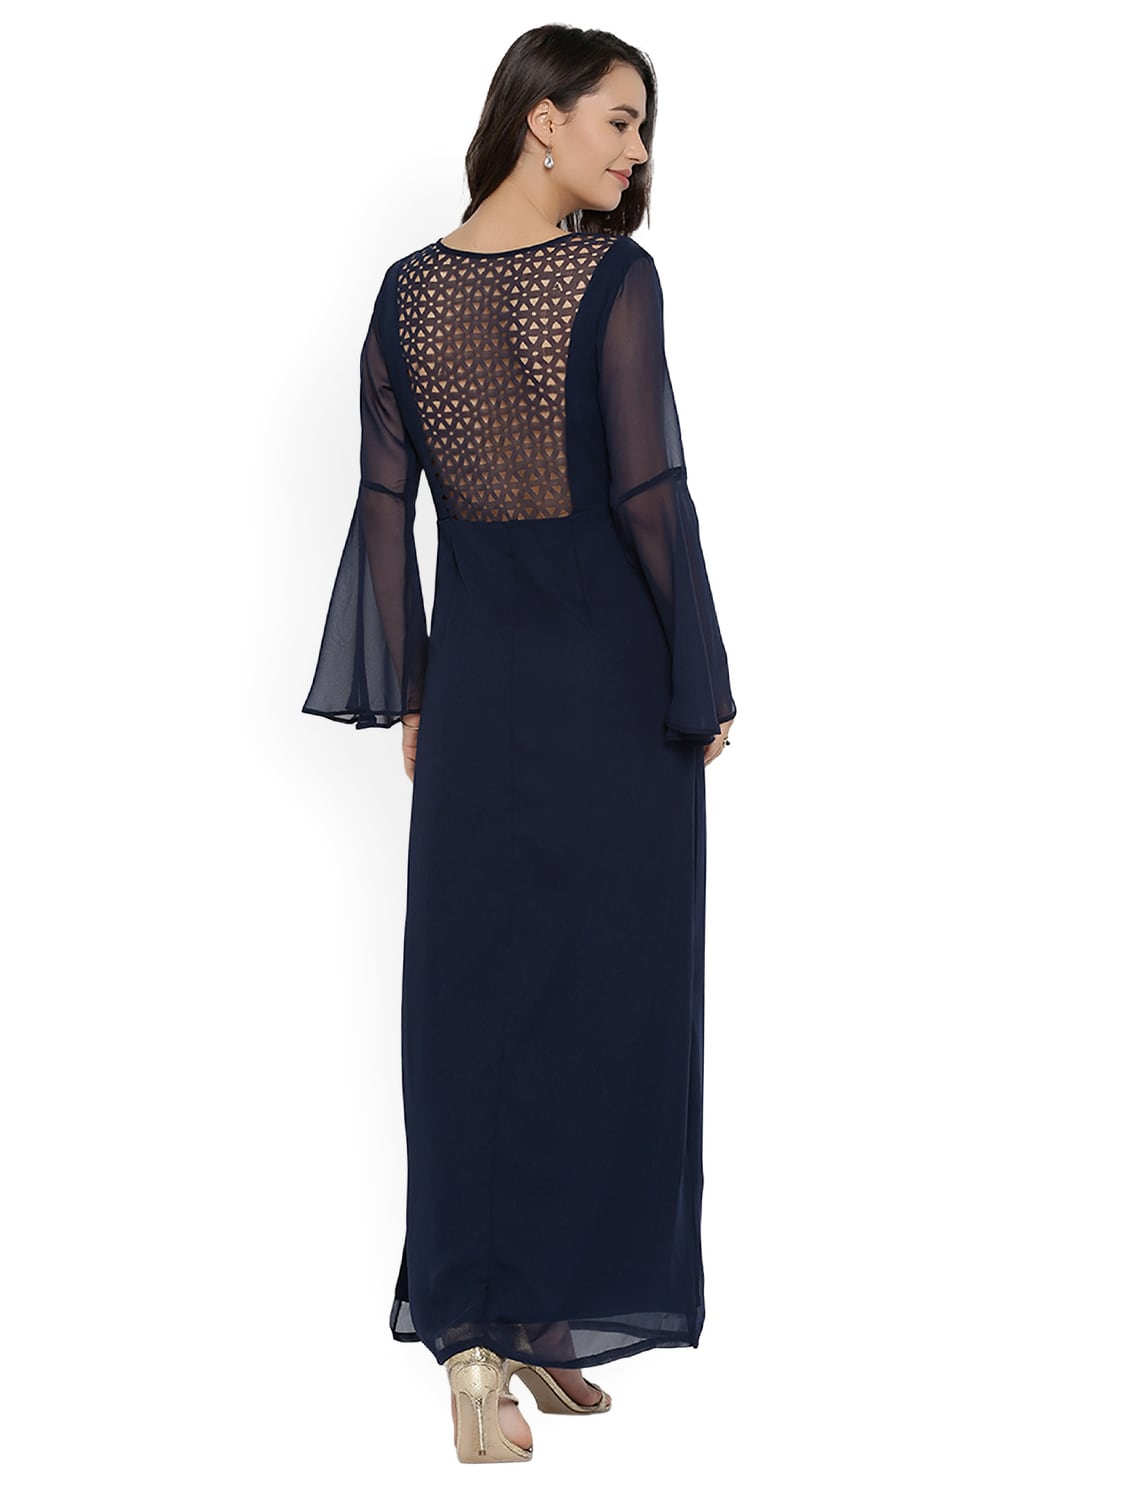 1bcecb3a84e Buy Navy Blue Solid Maxi Dress for Women from Rare for ₹1020 at 51% off